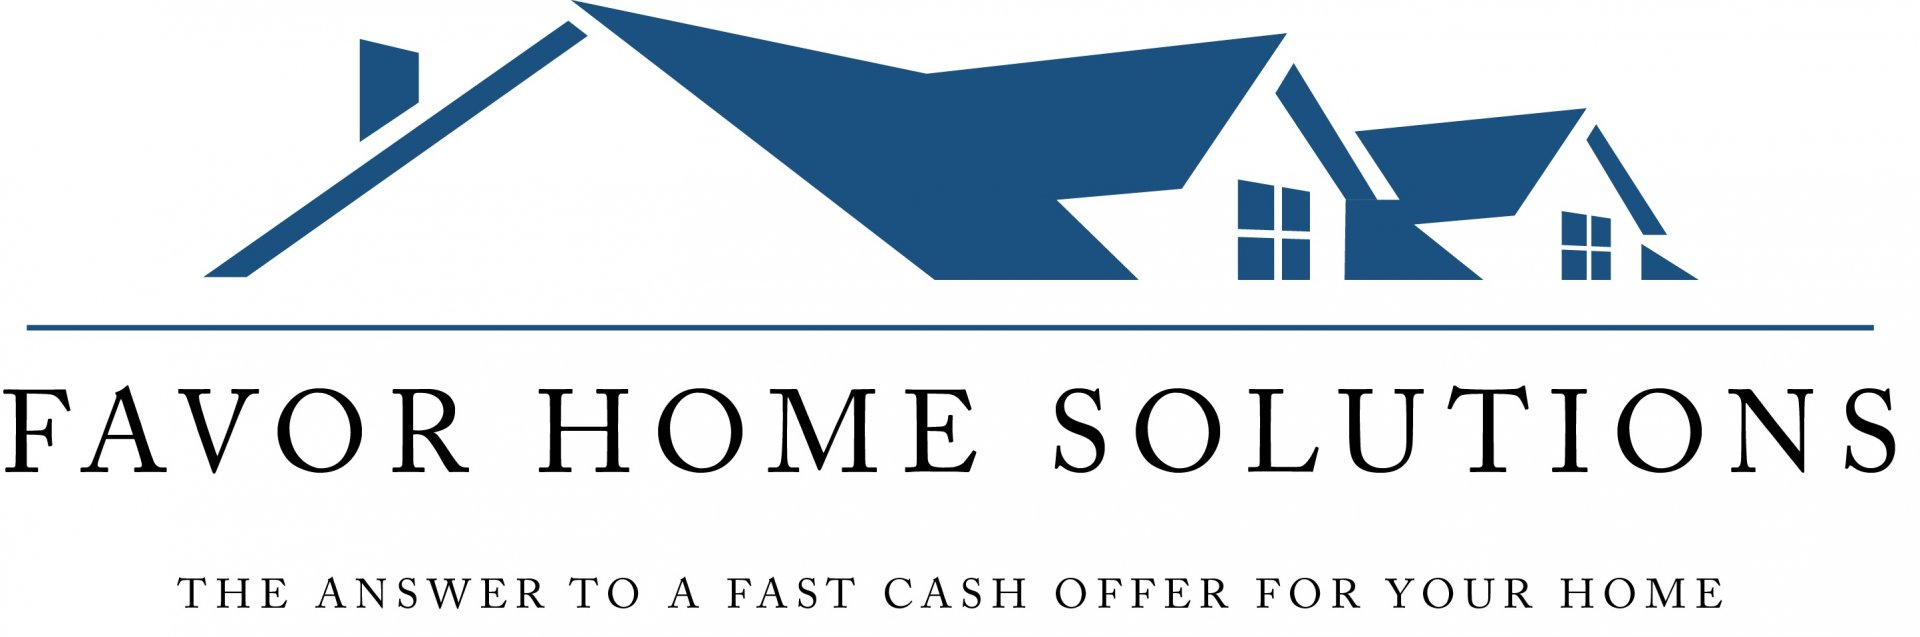 Favor Home Solutions Investment Properties logo